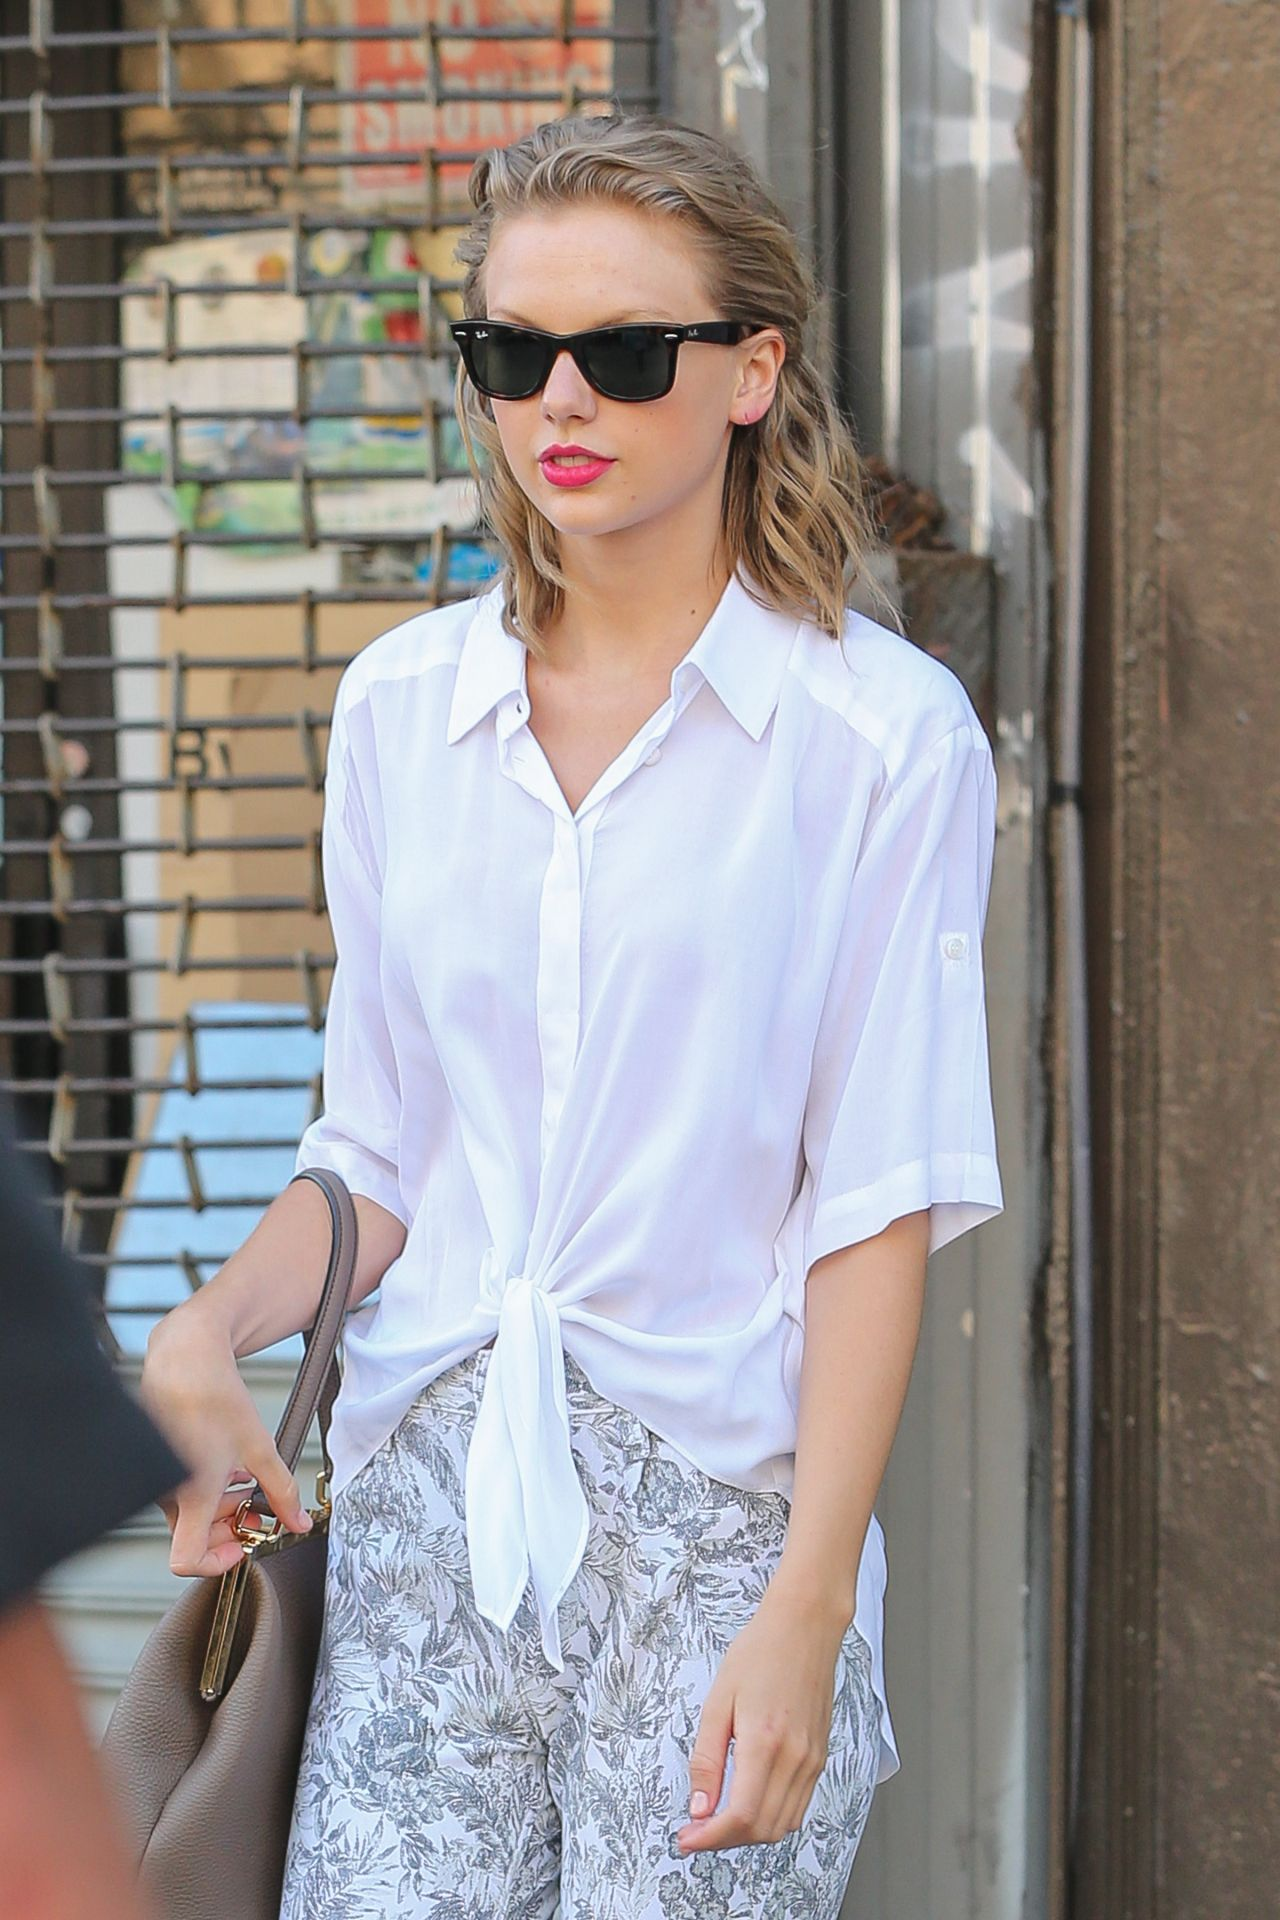 Taylor Swift Street Style - Leaving a Gym in New York City - June 2014